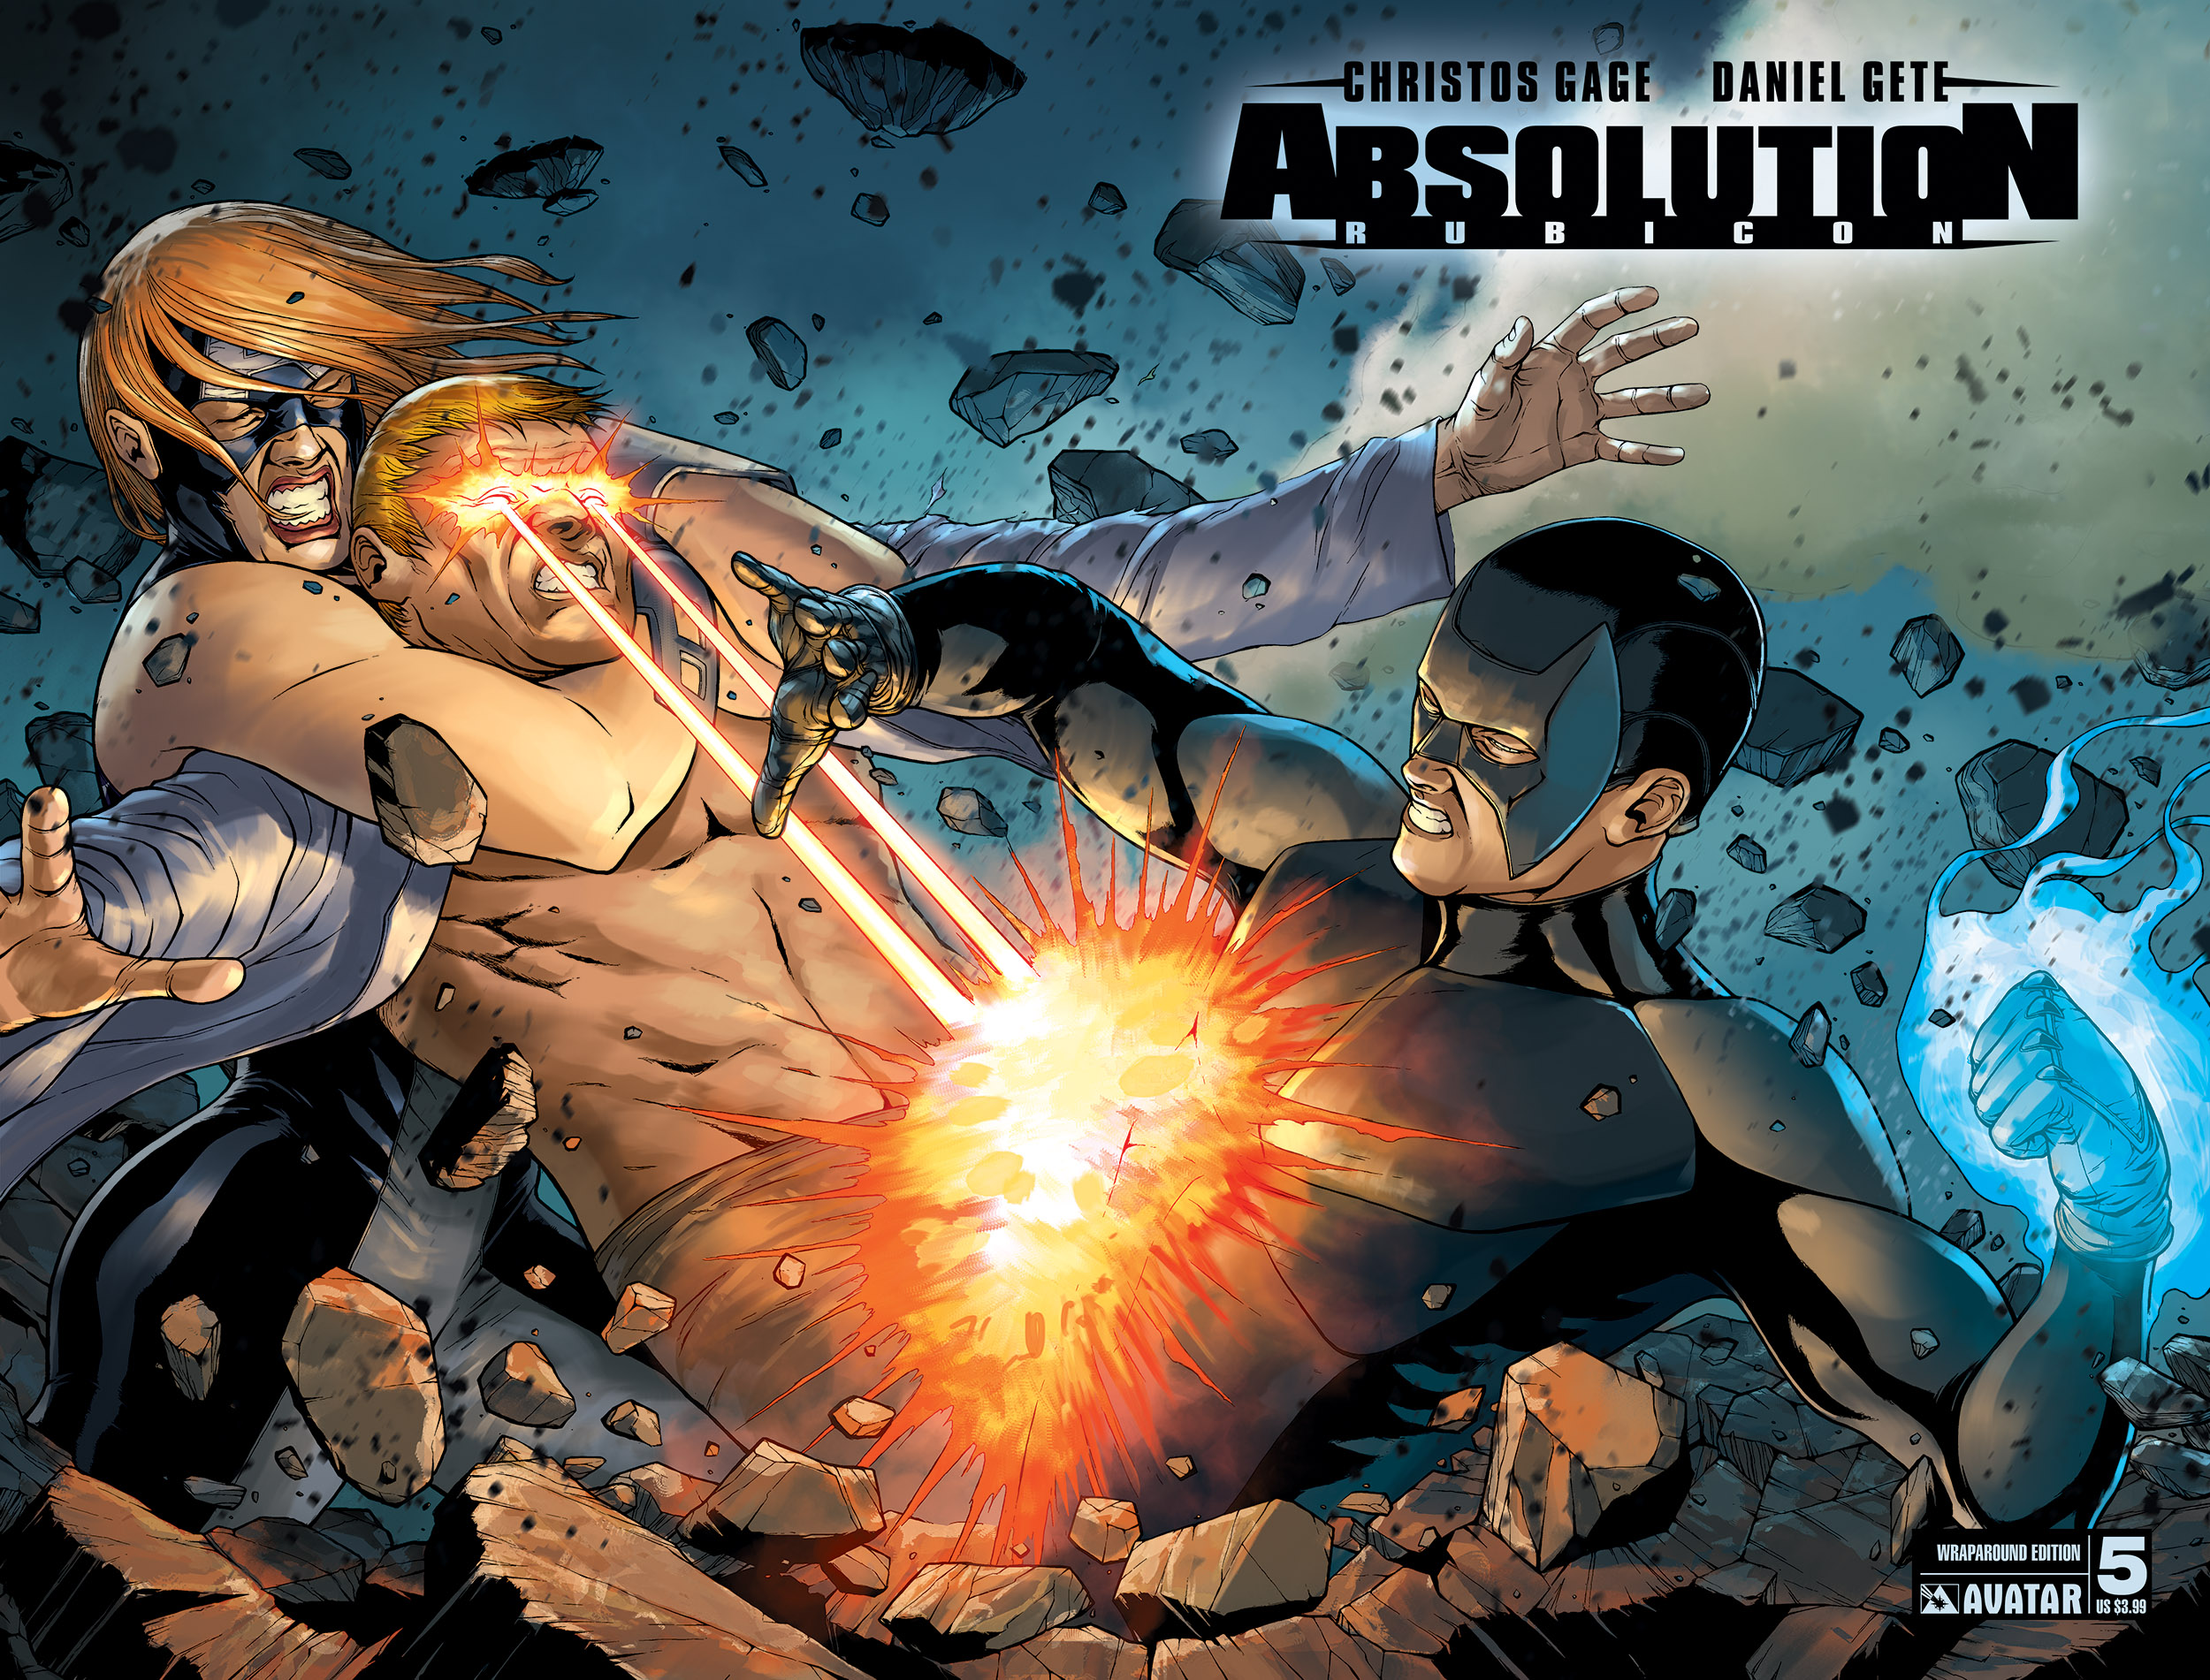 Read online Absolution: Rubicon comic -  Issue #5 - 5